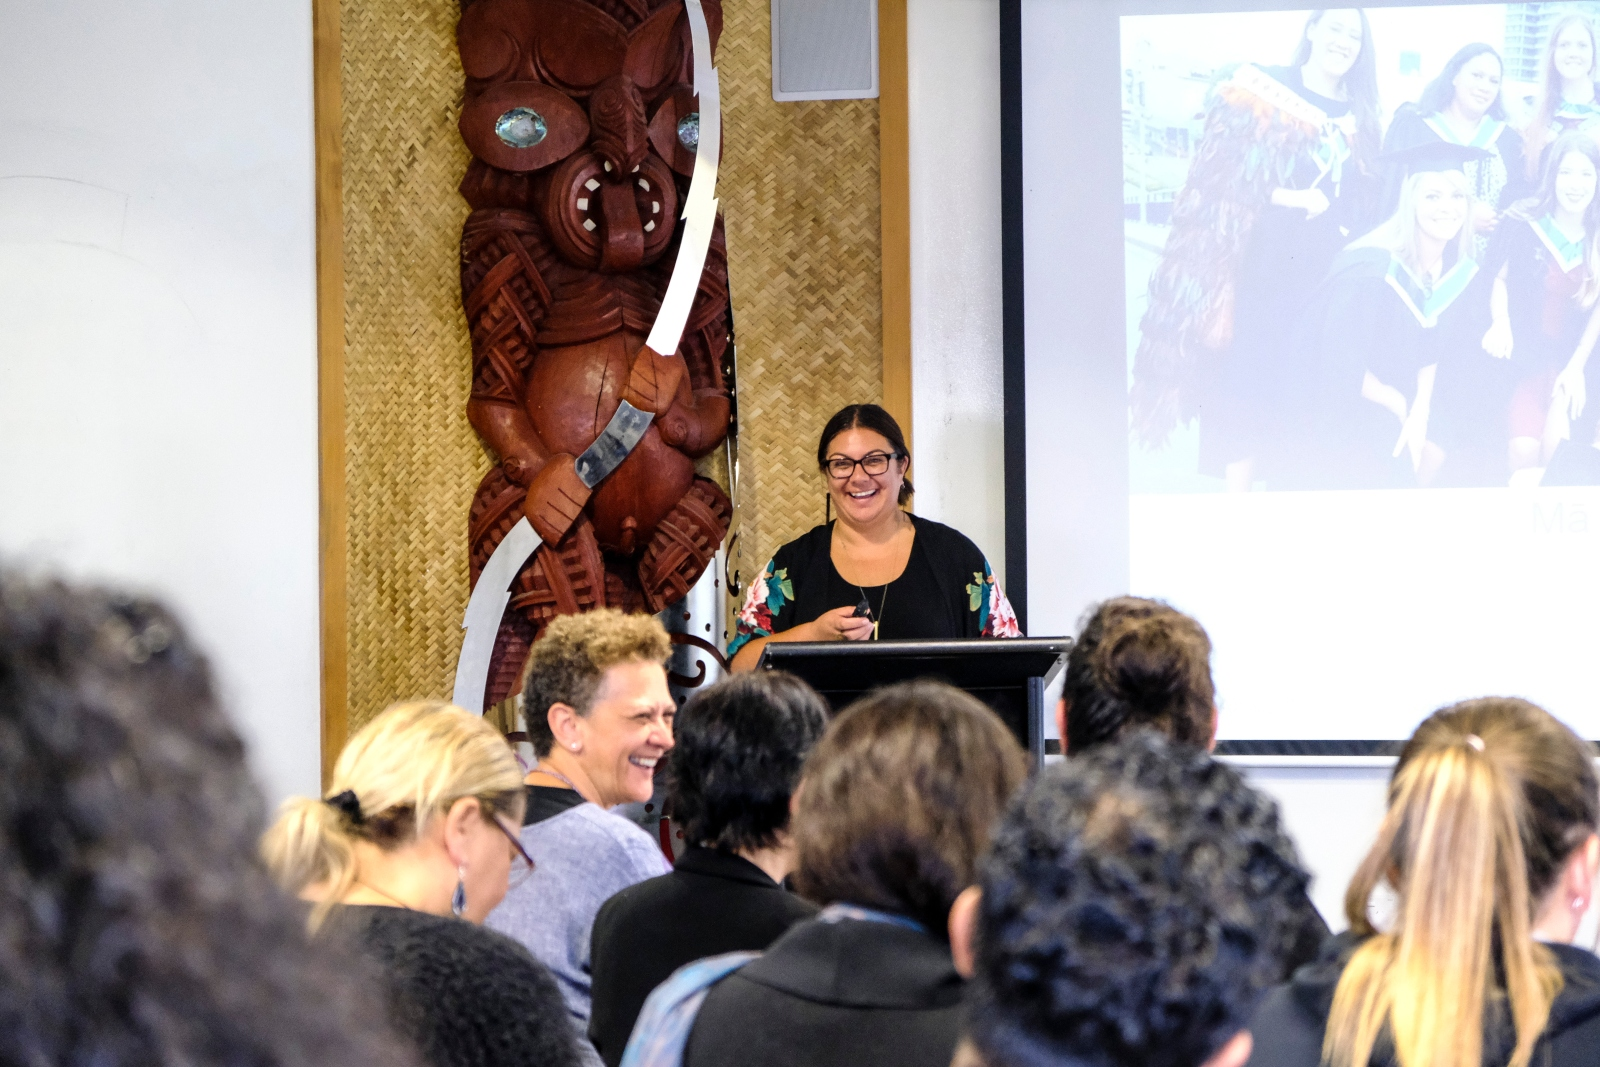 Kate Wynyard from Wintec discusses human design thinking, research and learner success. Photo_ Frances Kroondijk.